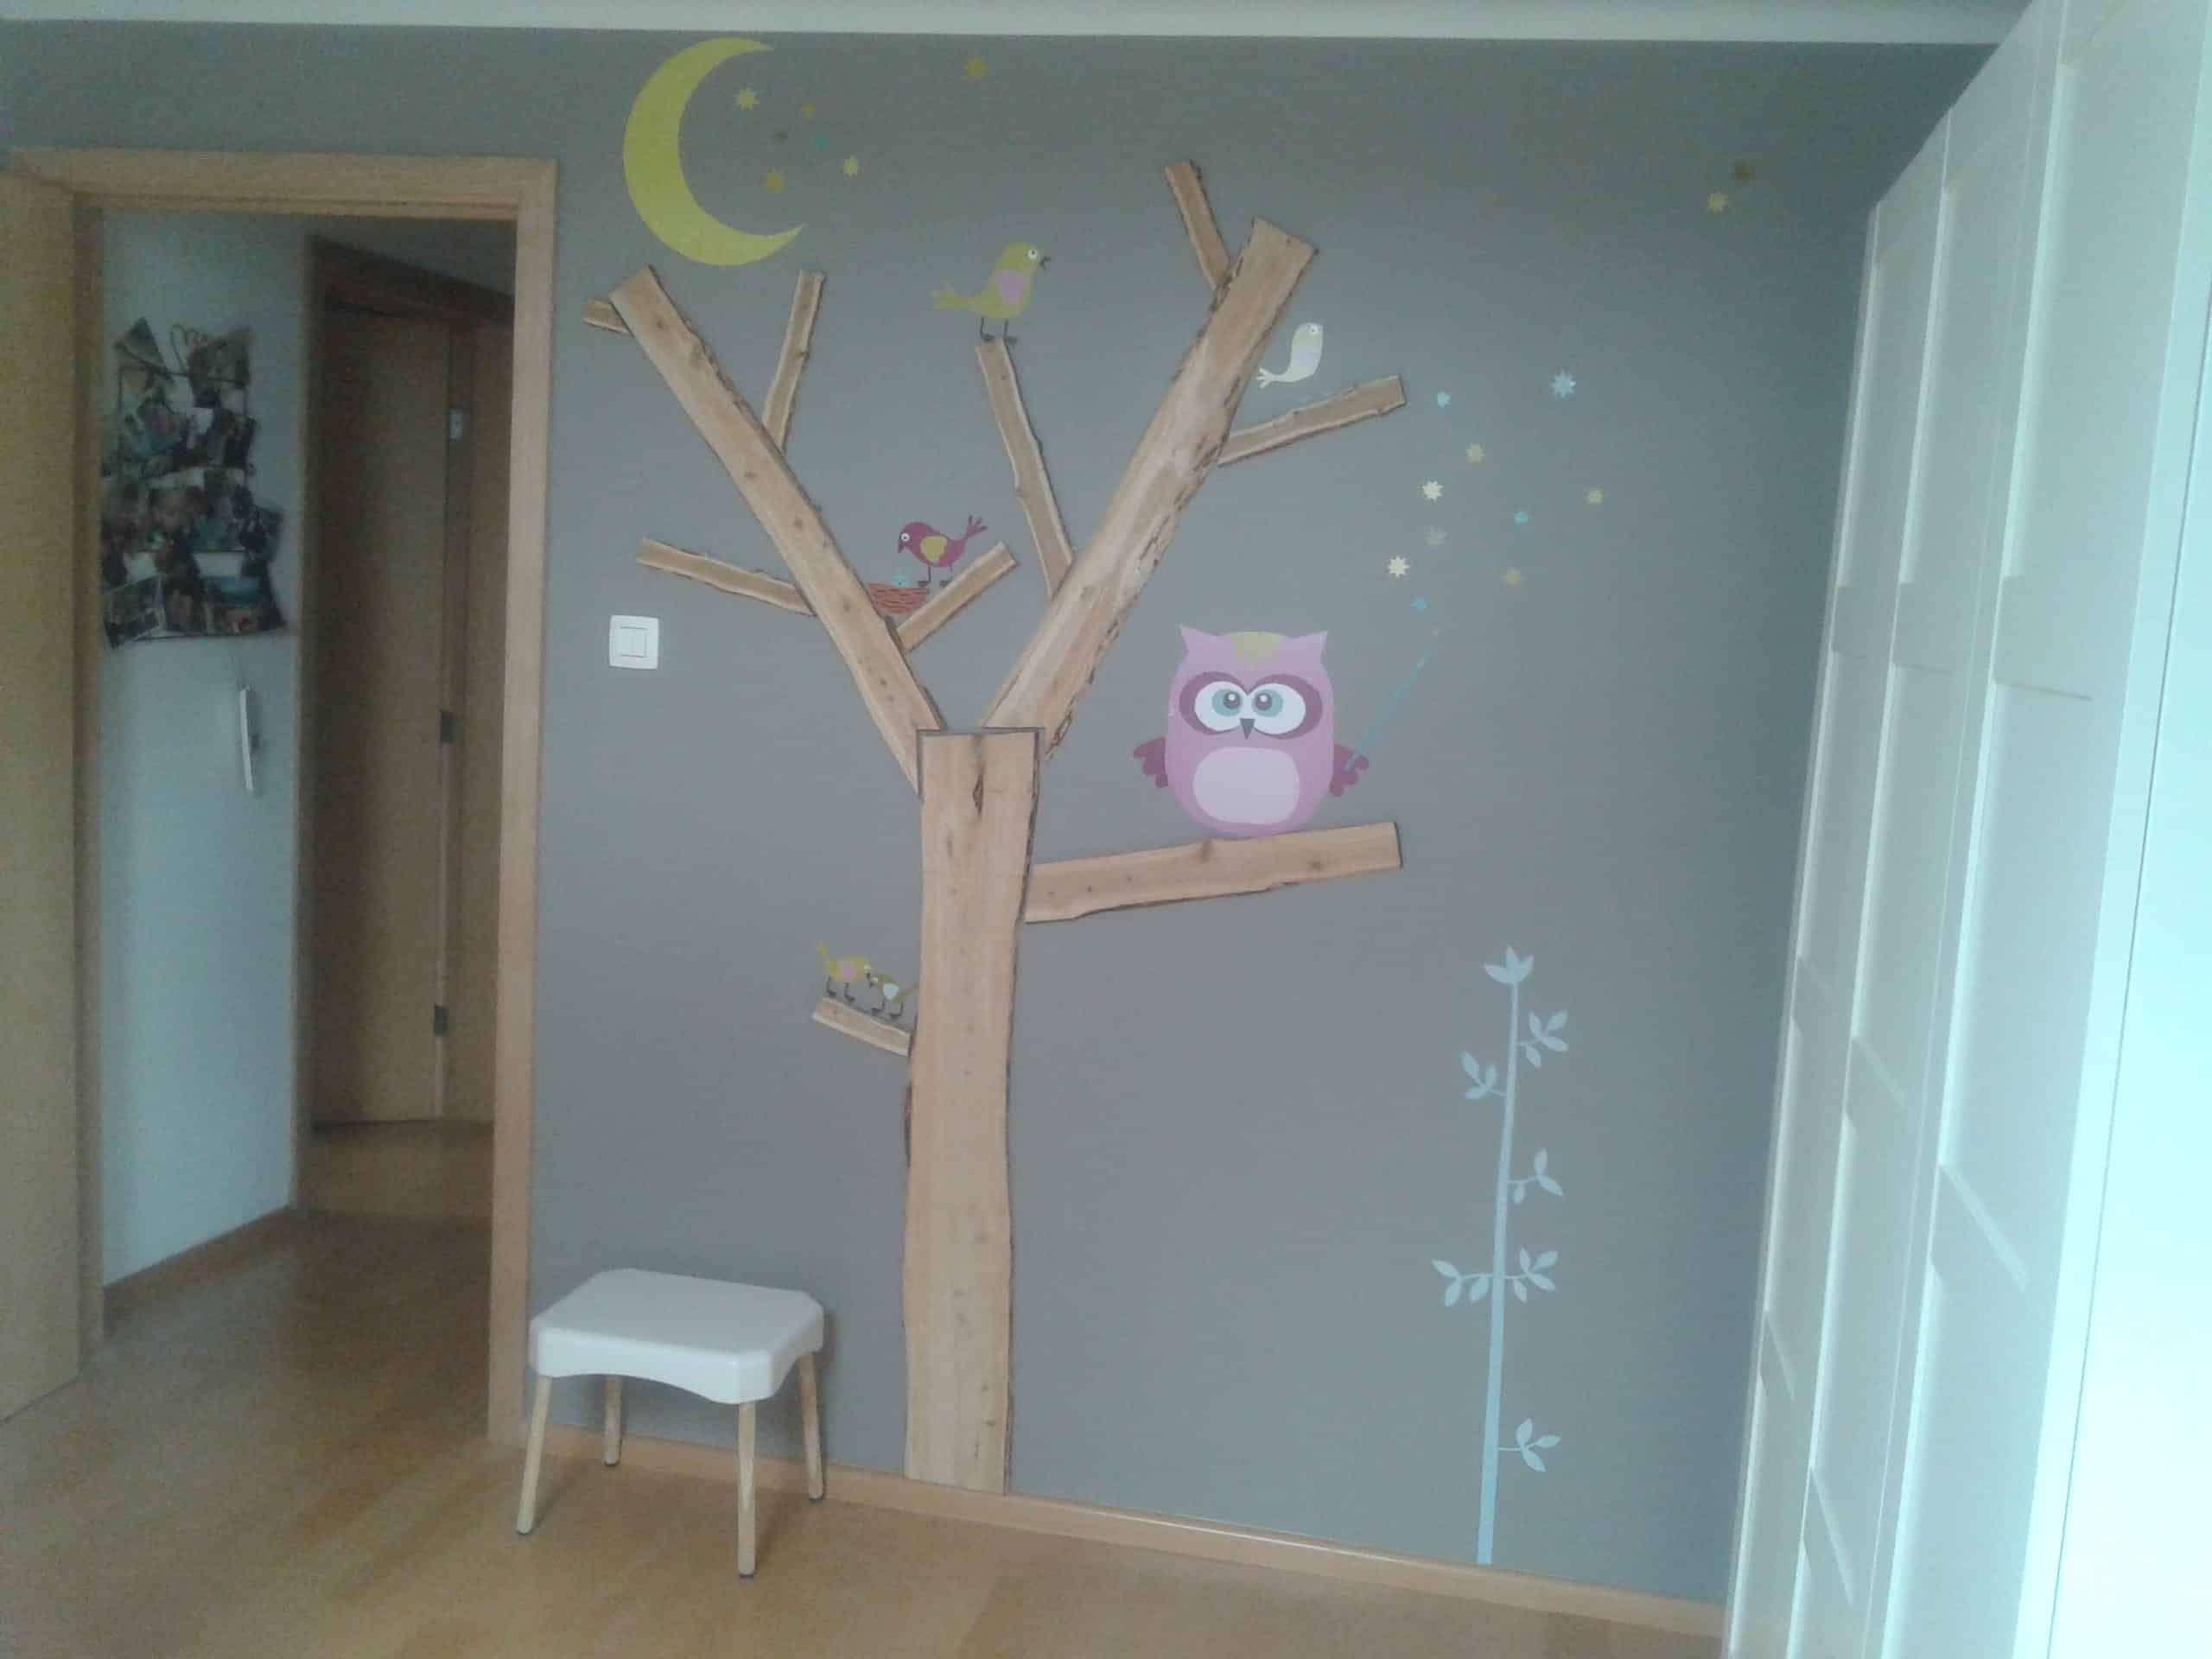 Décoration Arbre Pour Chambre Bébé Fille  Tree Wall Décor for My Daughter Be